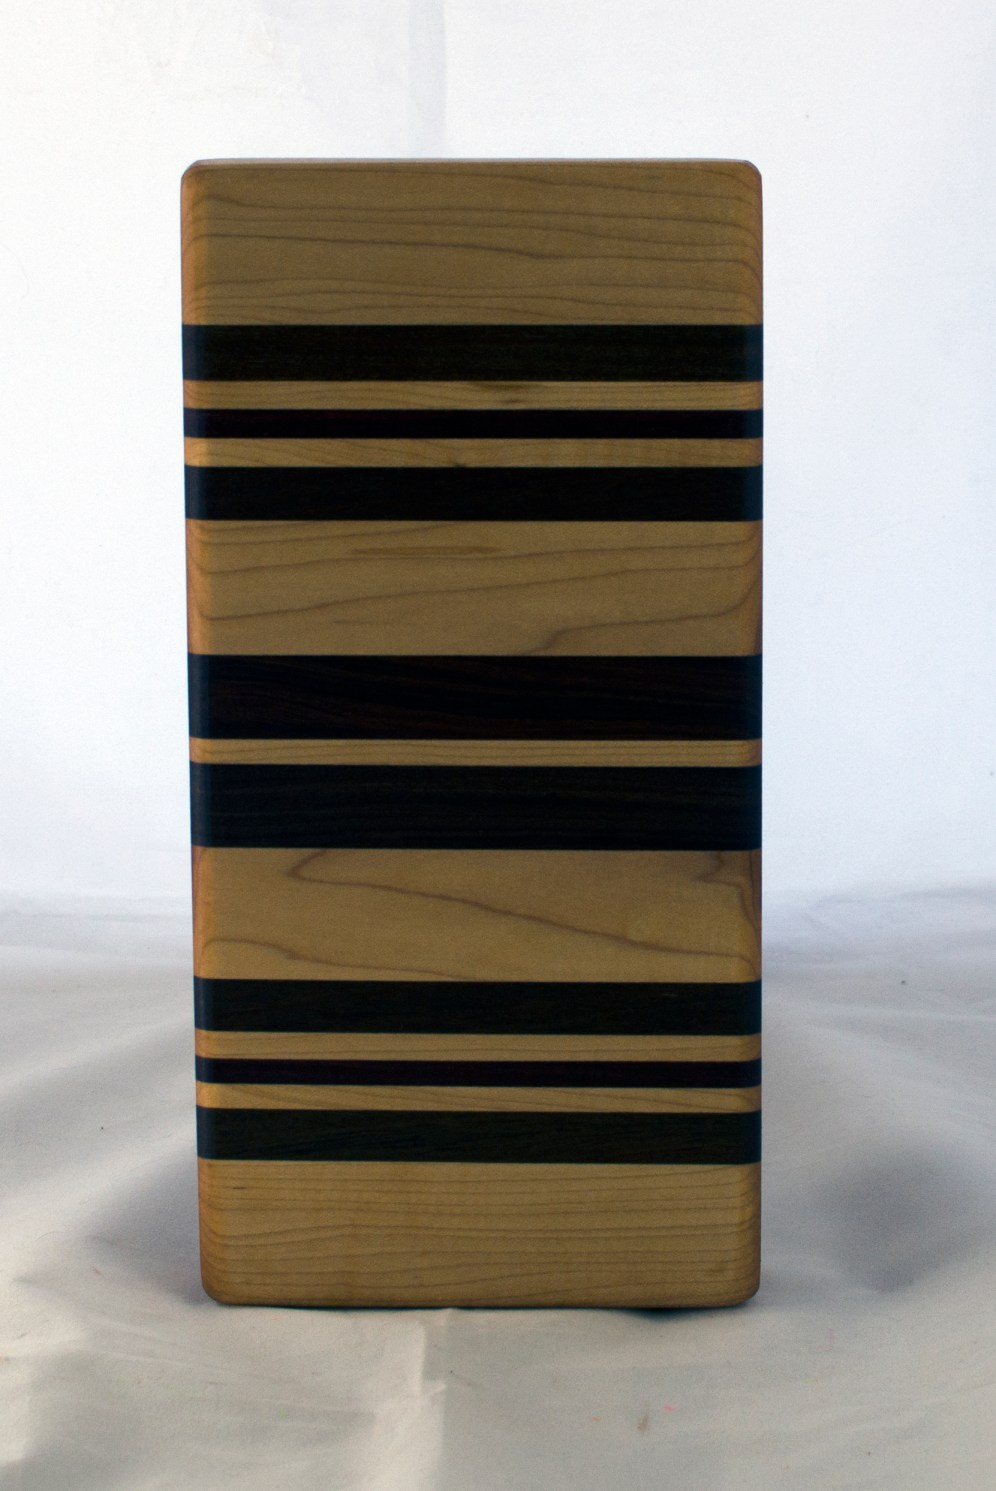 "Small Board 17 - 234. Hard Maple, Purpleheart, Jatoba & Pau Ferro. 5"" x 11"" x 1-1/4""."